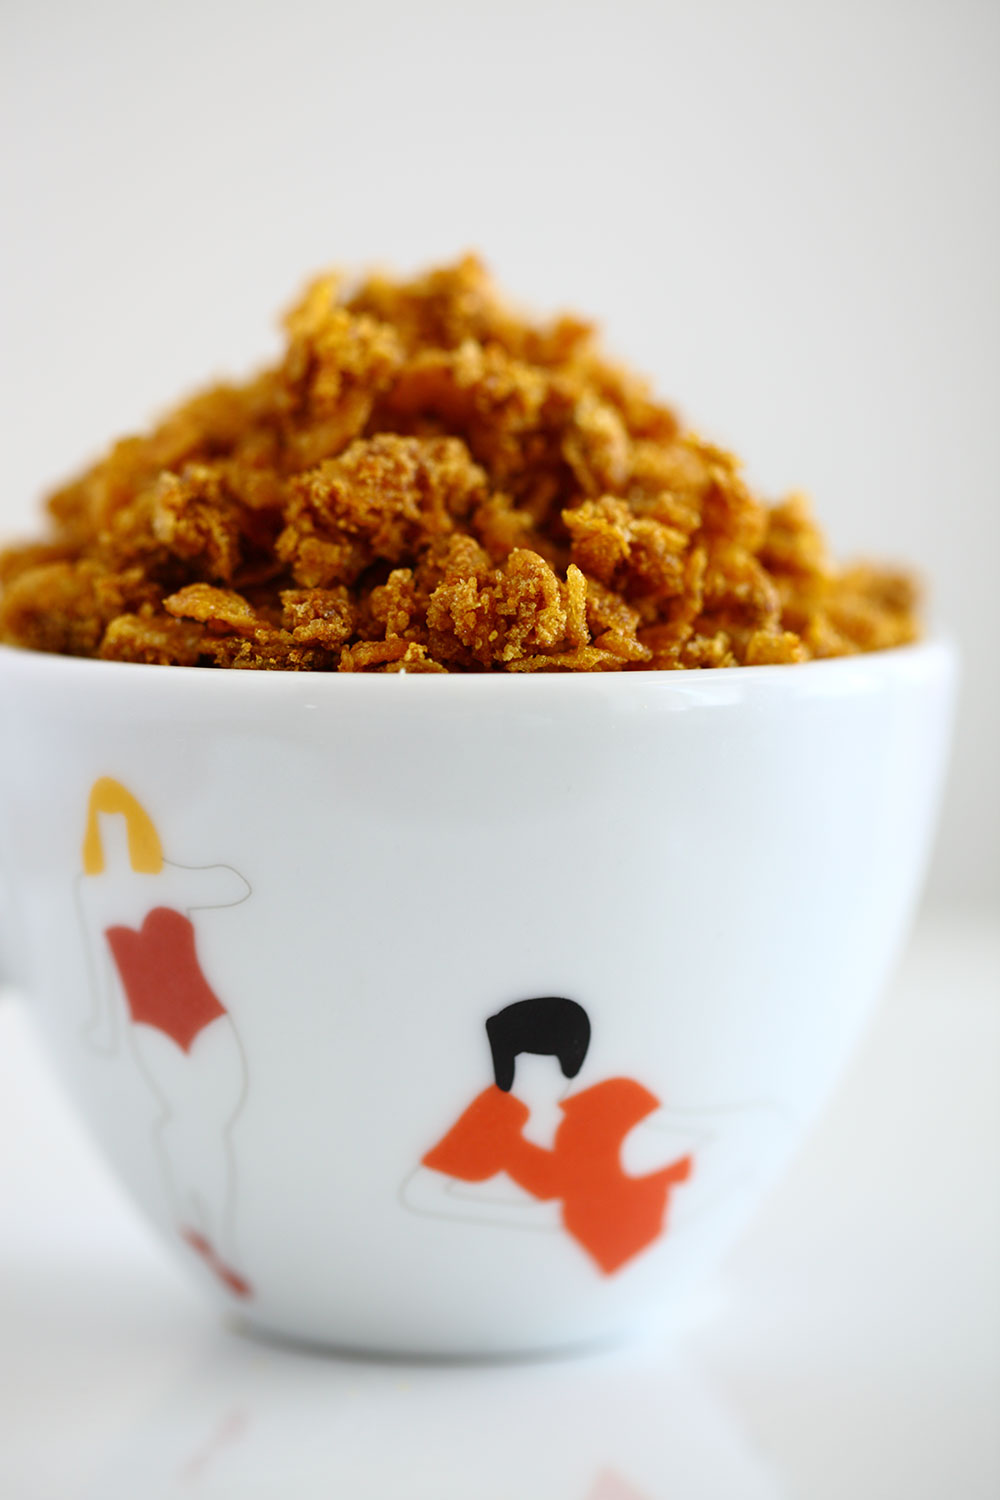 Caramelized Cornflakes